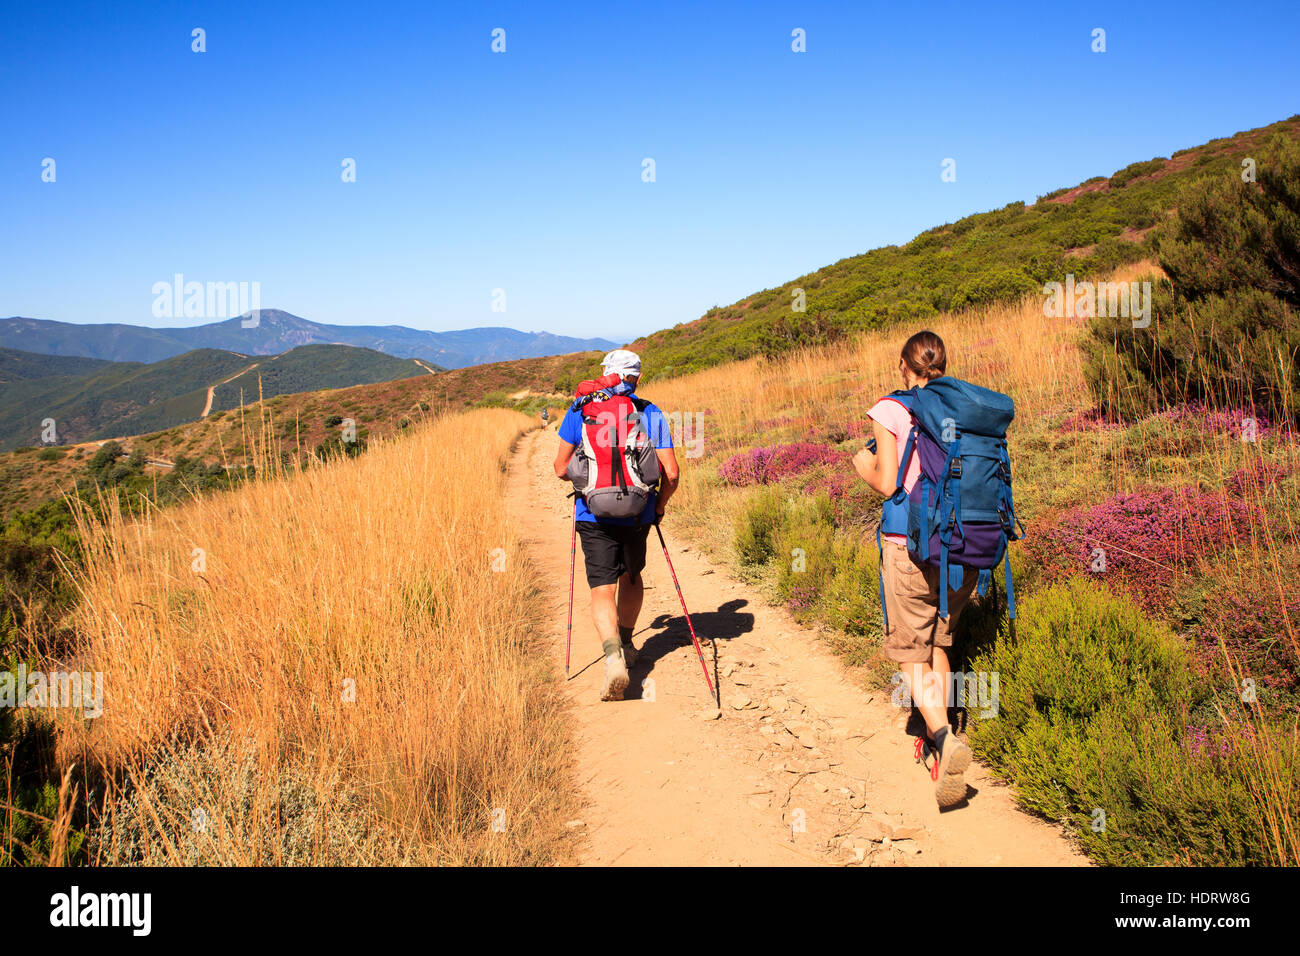 RABANAL, SPAIN - AUGUST, 05: Pilgrimns along the way of St. James on August 05, 2016 Stock Photo